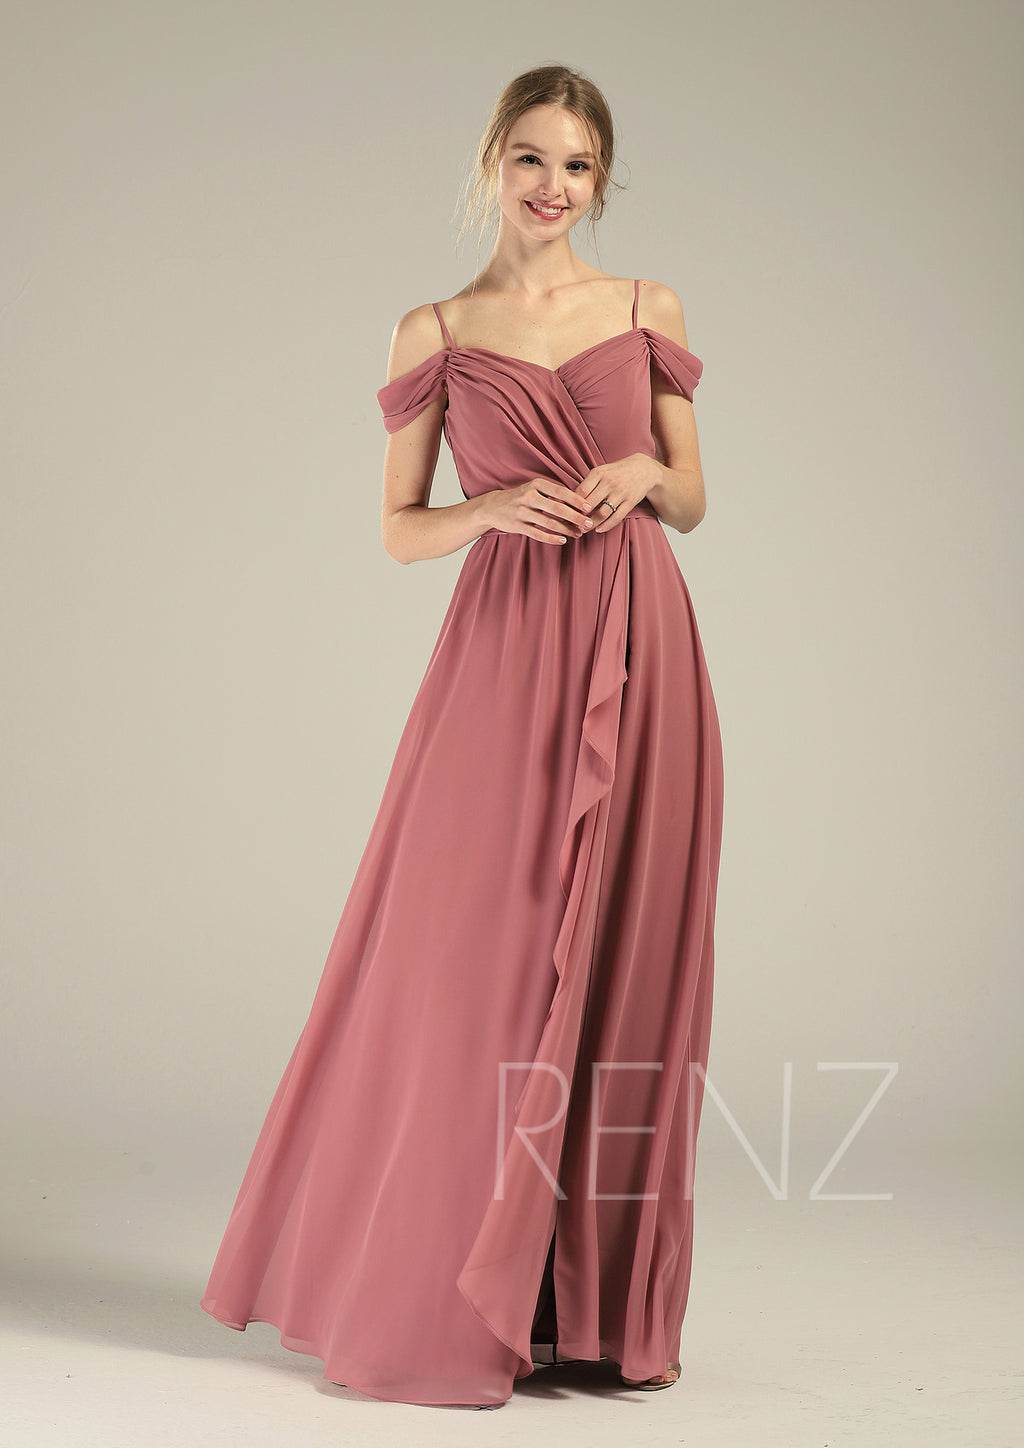 Prom Dress Old Rose Chiffon Bridesmaid Dress Ruched Off Shoulder Maxi Dress Ruffle A-line Party Dress Lapped Skirt Long Wedding Dress(L542)